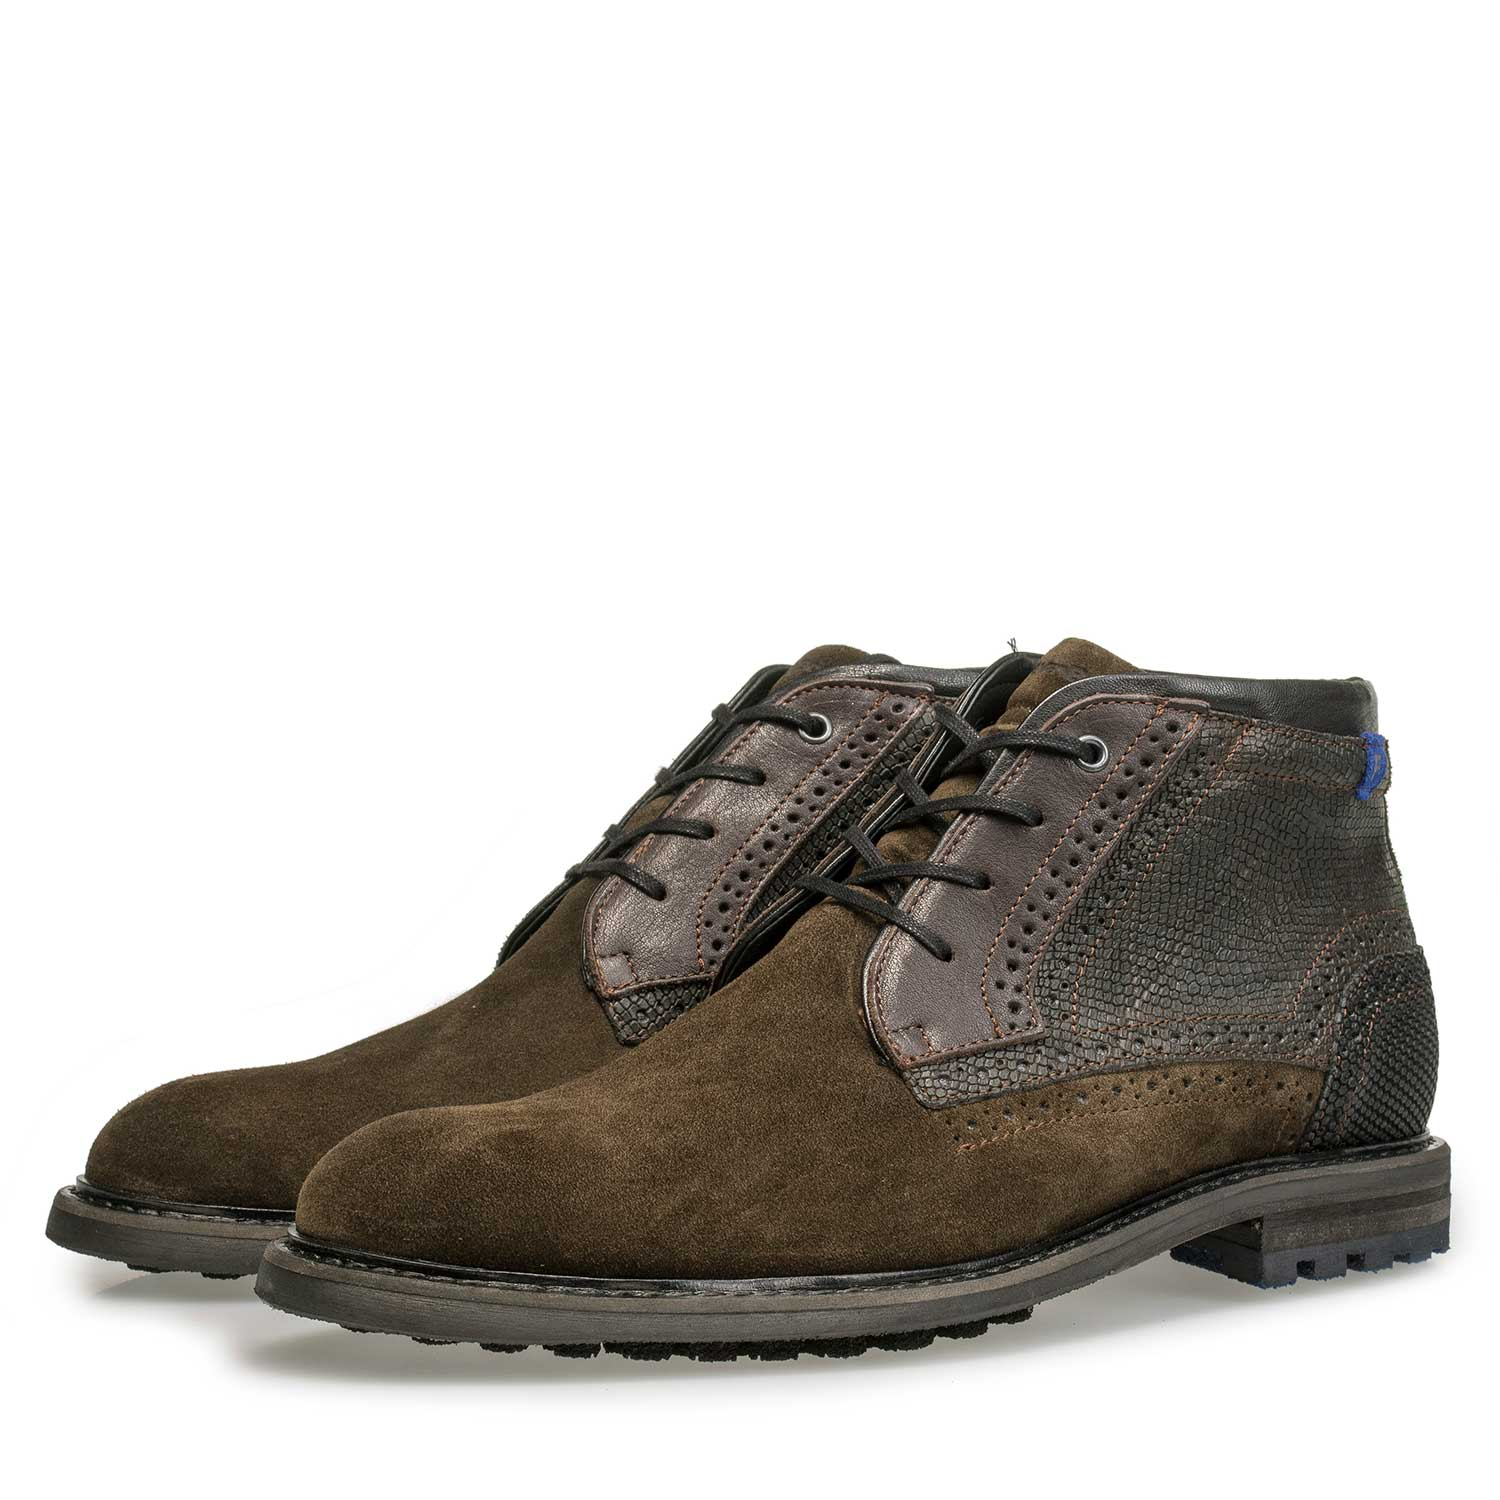 10978/14 - Olive green calf suede leather lace boot